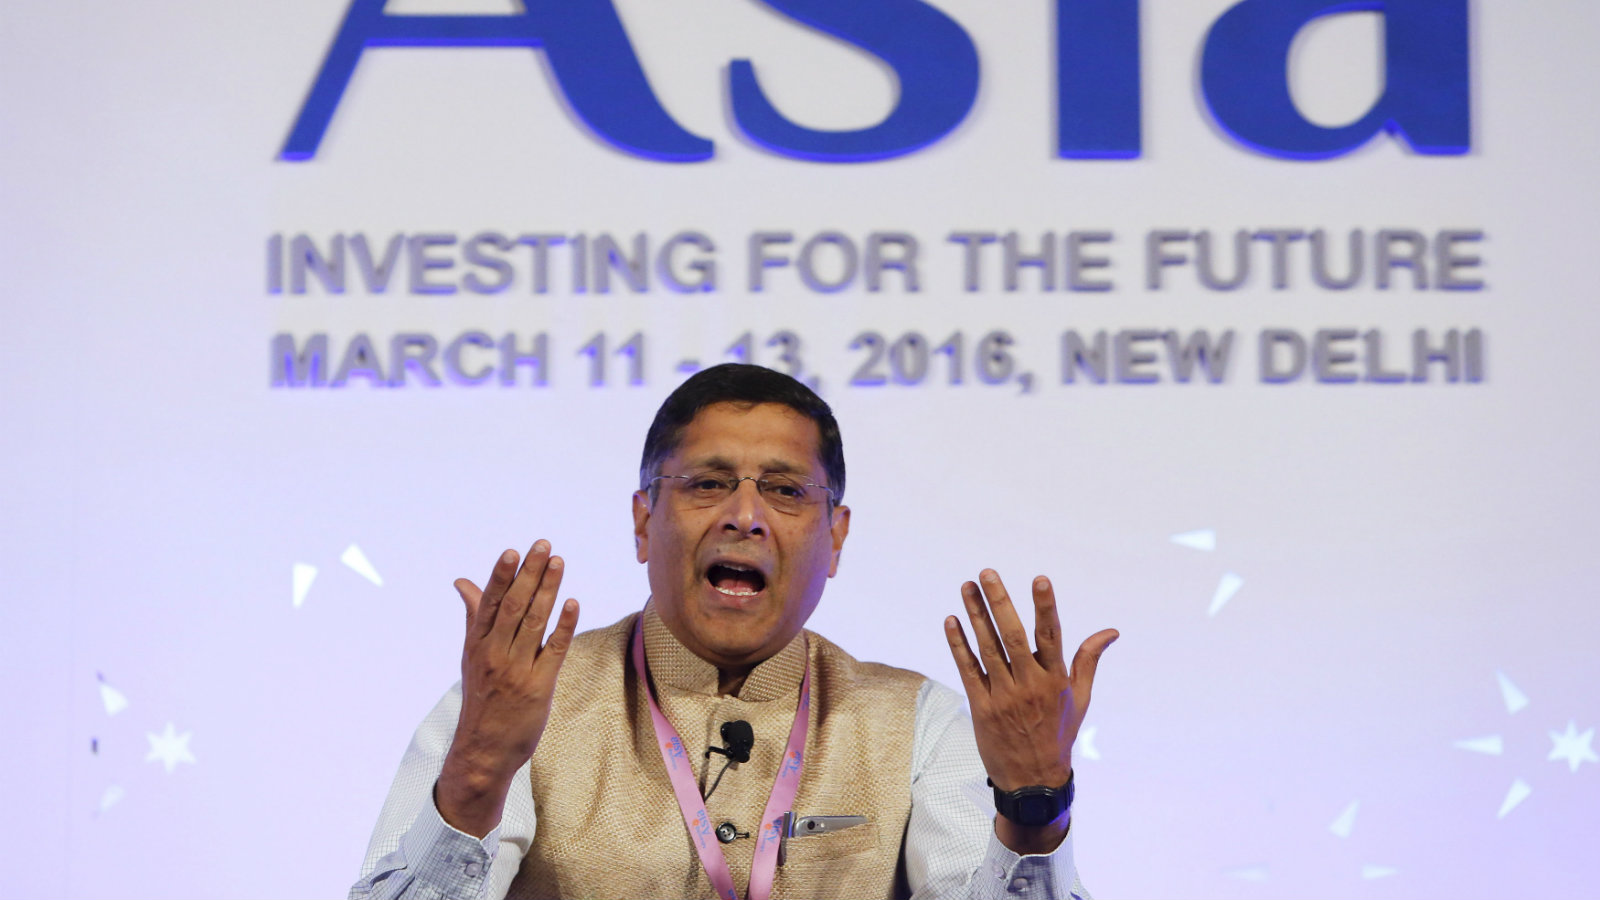 "Arvind Subramanian, chief economic adviser at India's Finance Ministry, gestures as he speaks during a session themed Asian Growth Models at the ""Advancing Asia: Investing for the Future"" conference in New Delhi, India, March 12, 2016."